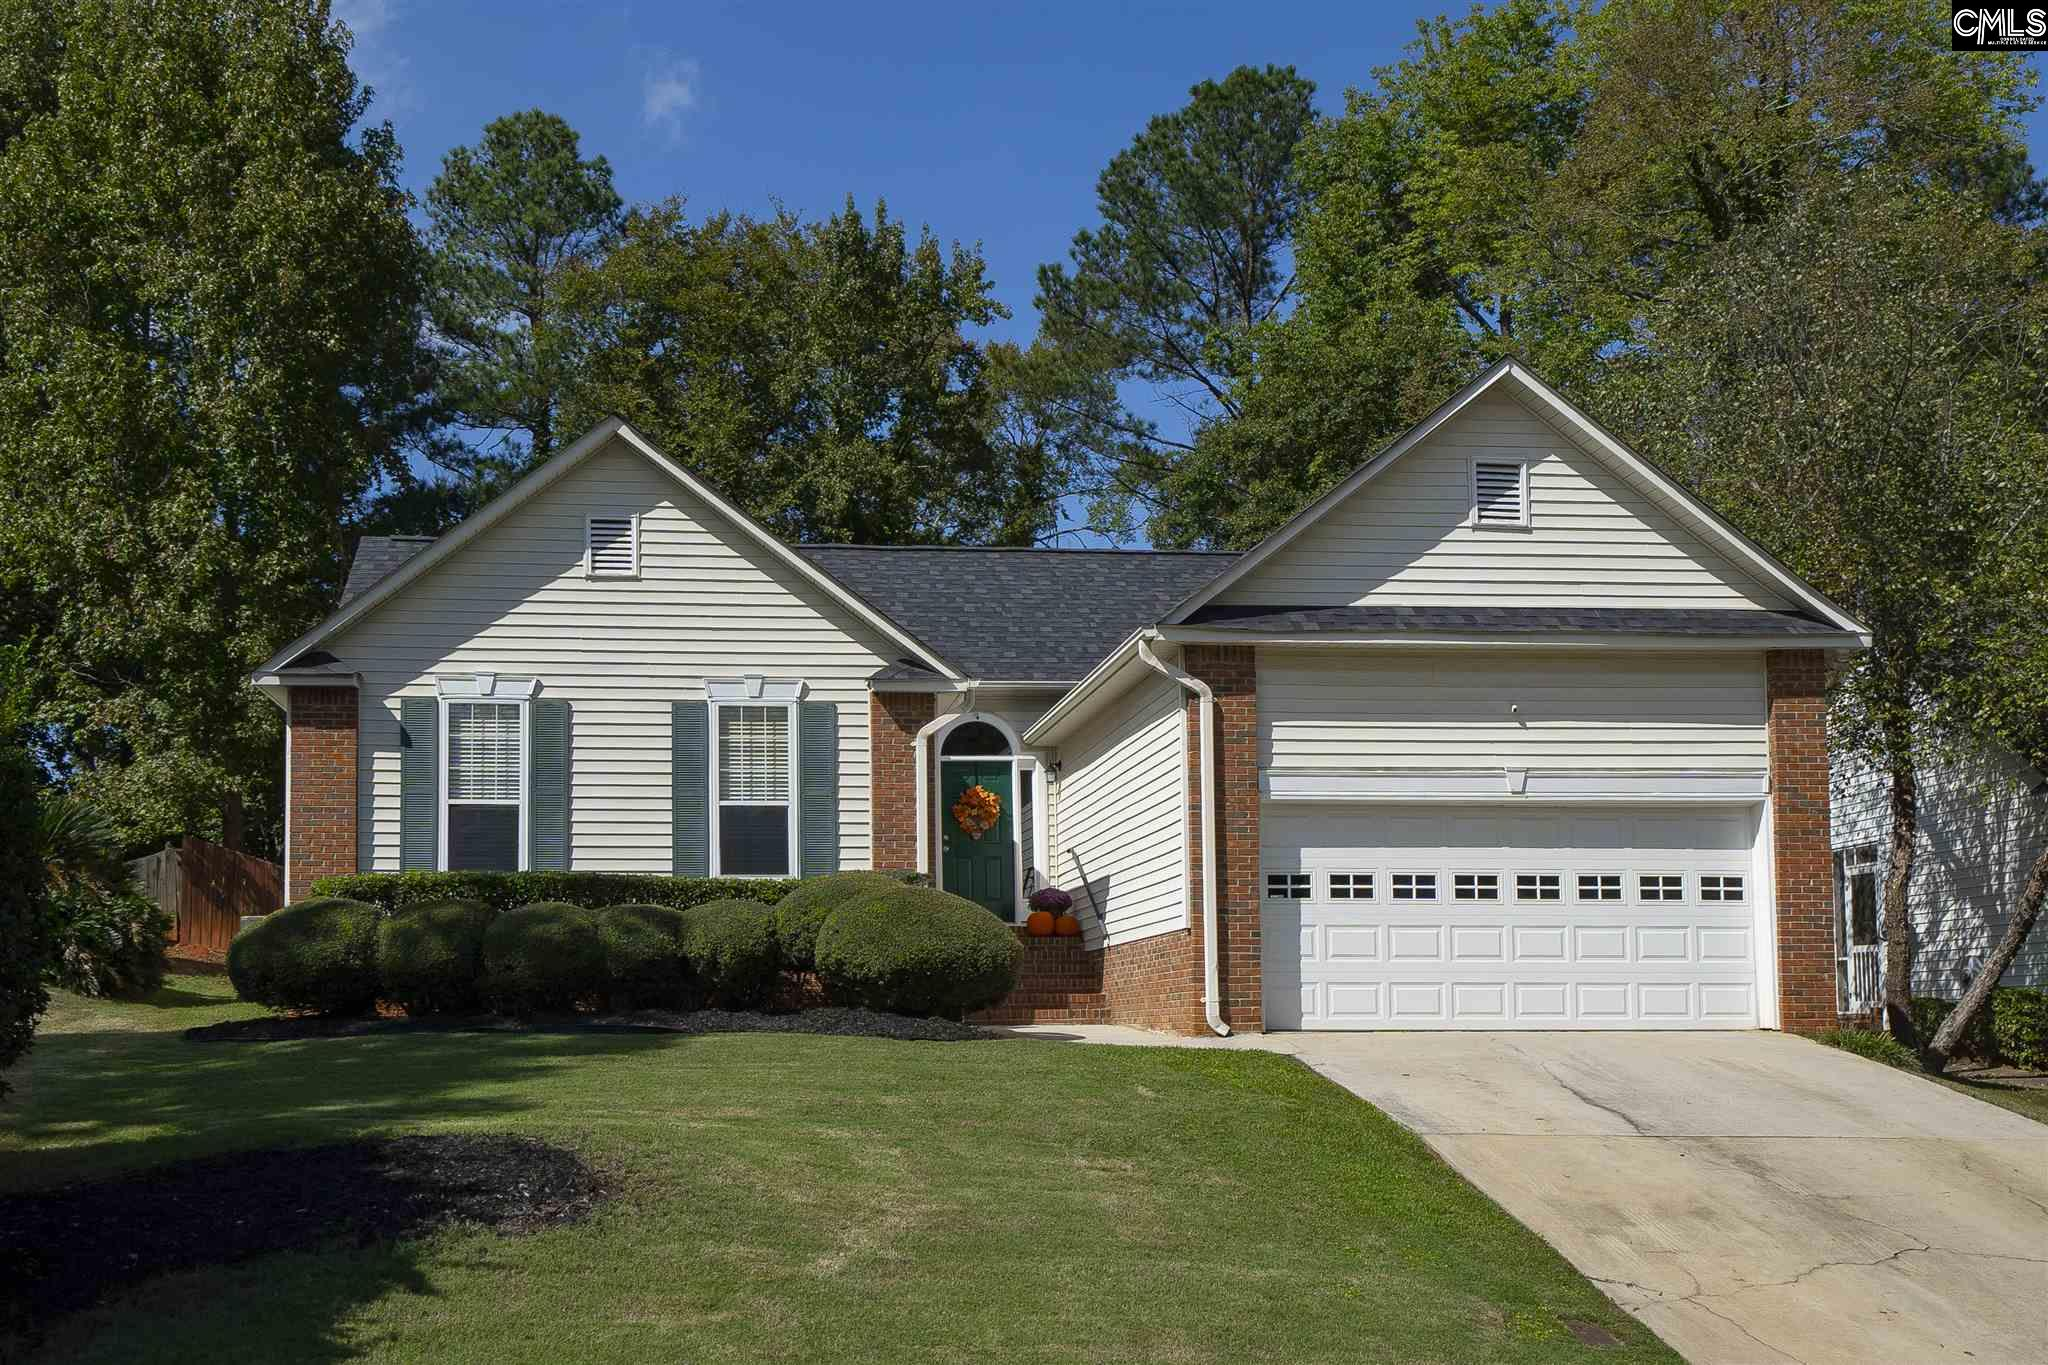 209 Stockmoor Columbia, SC 29212